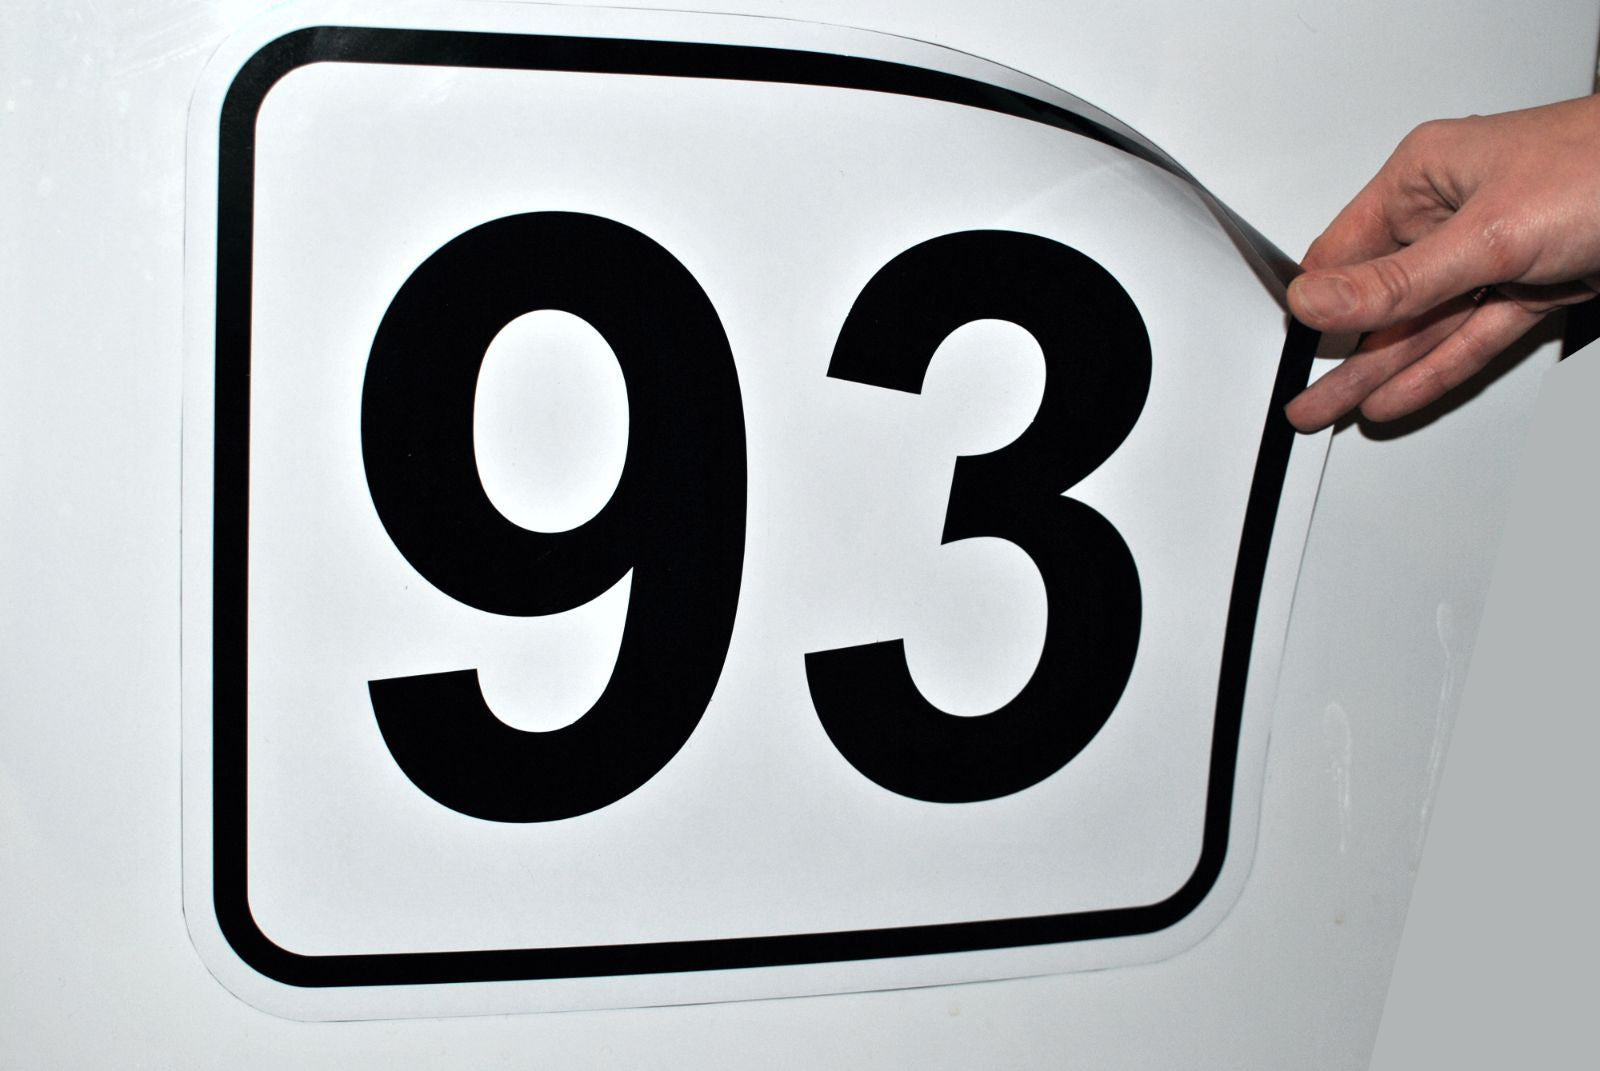 Magnetic Racing Numbers - stickyarteu